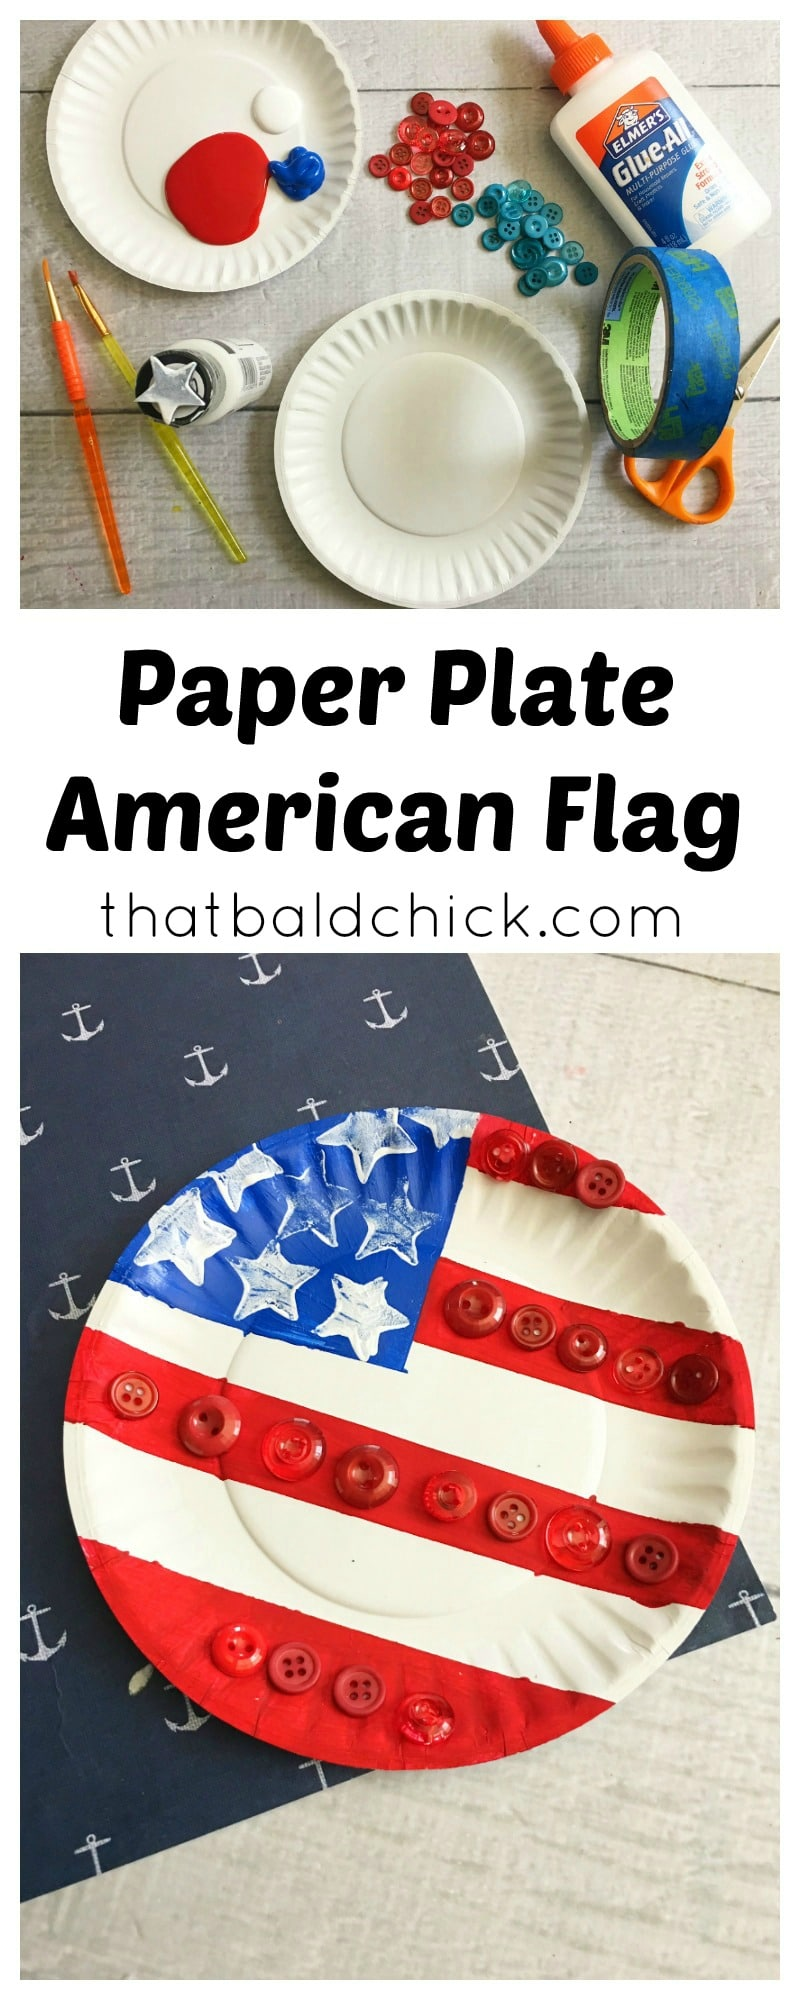 Paper Plate American Flag Craft at thatbaldchick.com